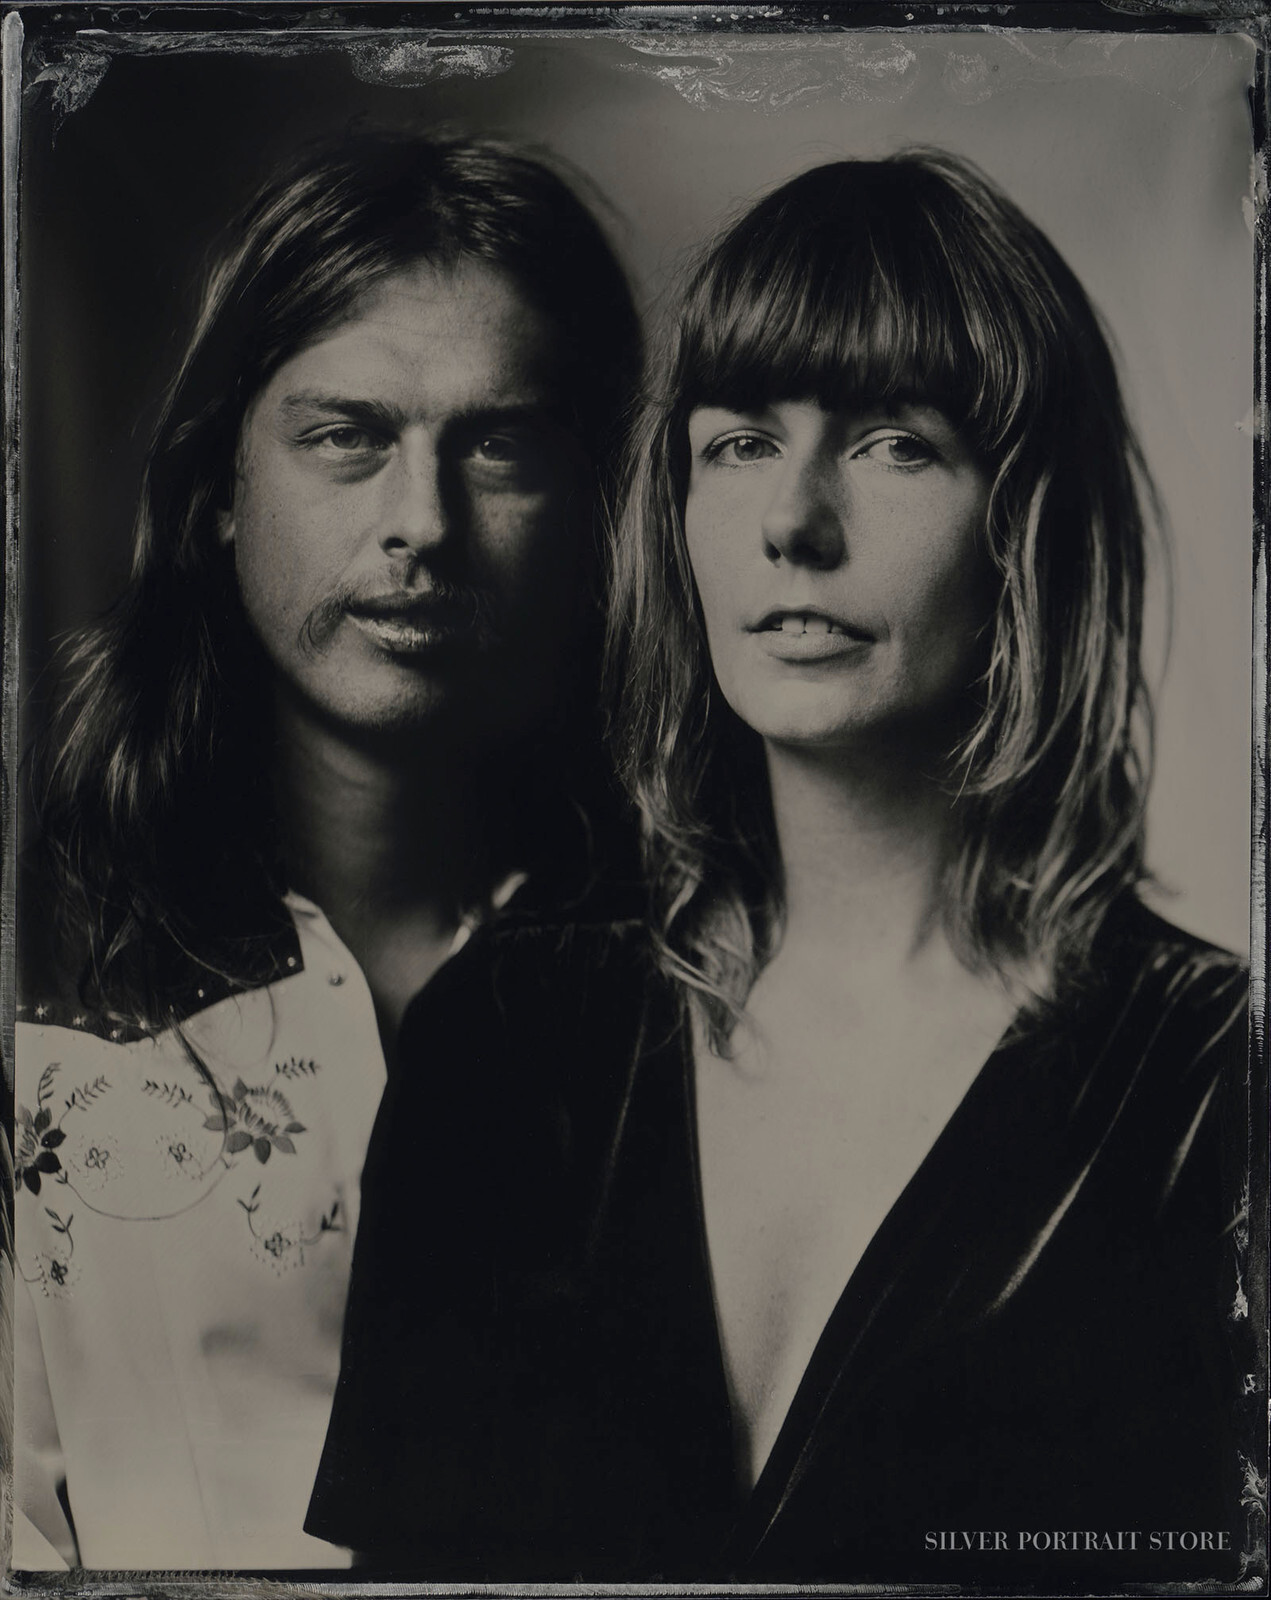 Pablo & Nikki-Silver Portrait Store-scan from Wet plate collodion-Tintype 10 x 12 cm.